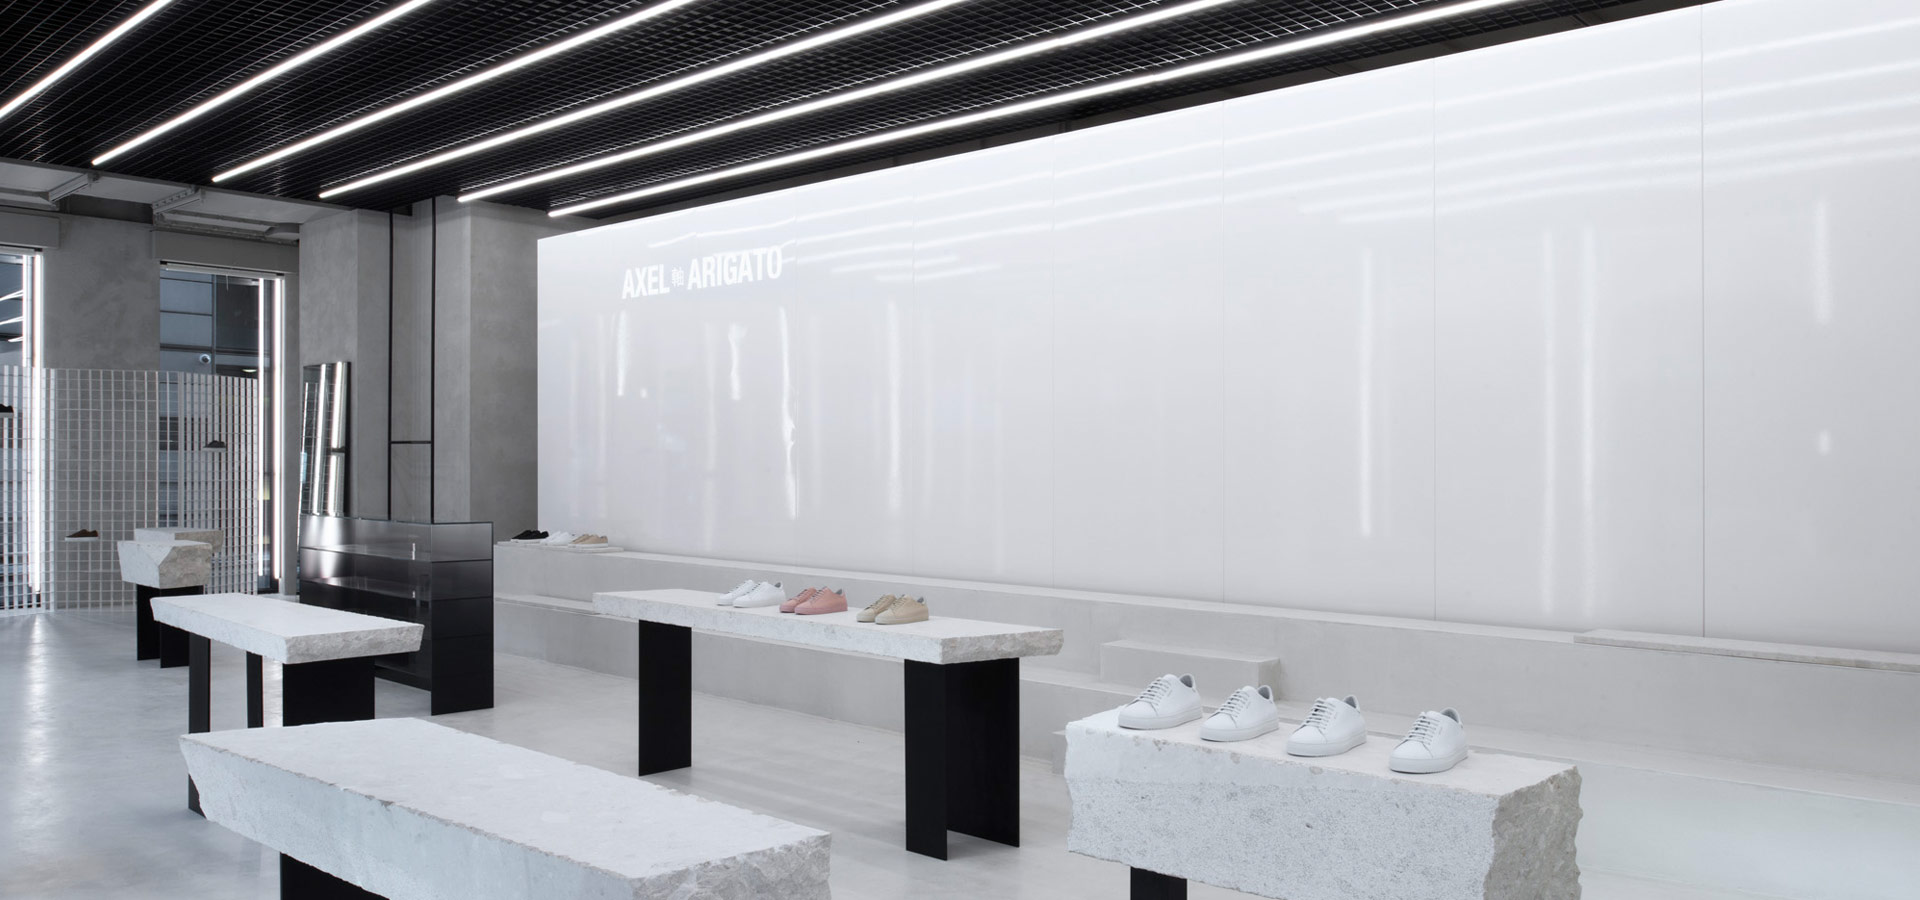 Luxsystem Shop Axel Arigato London Led lighting aesthetic SL 20.3